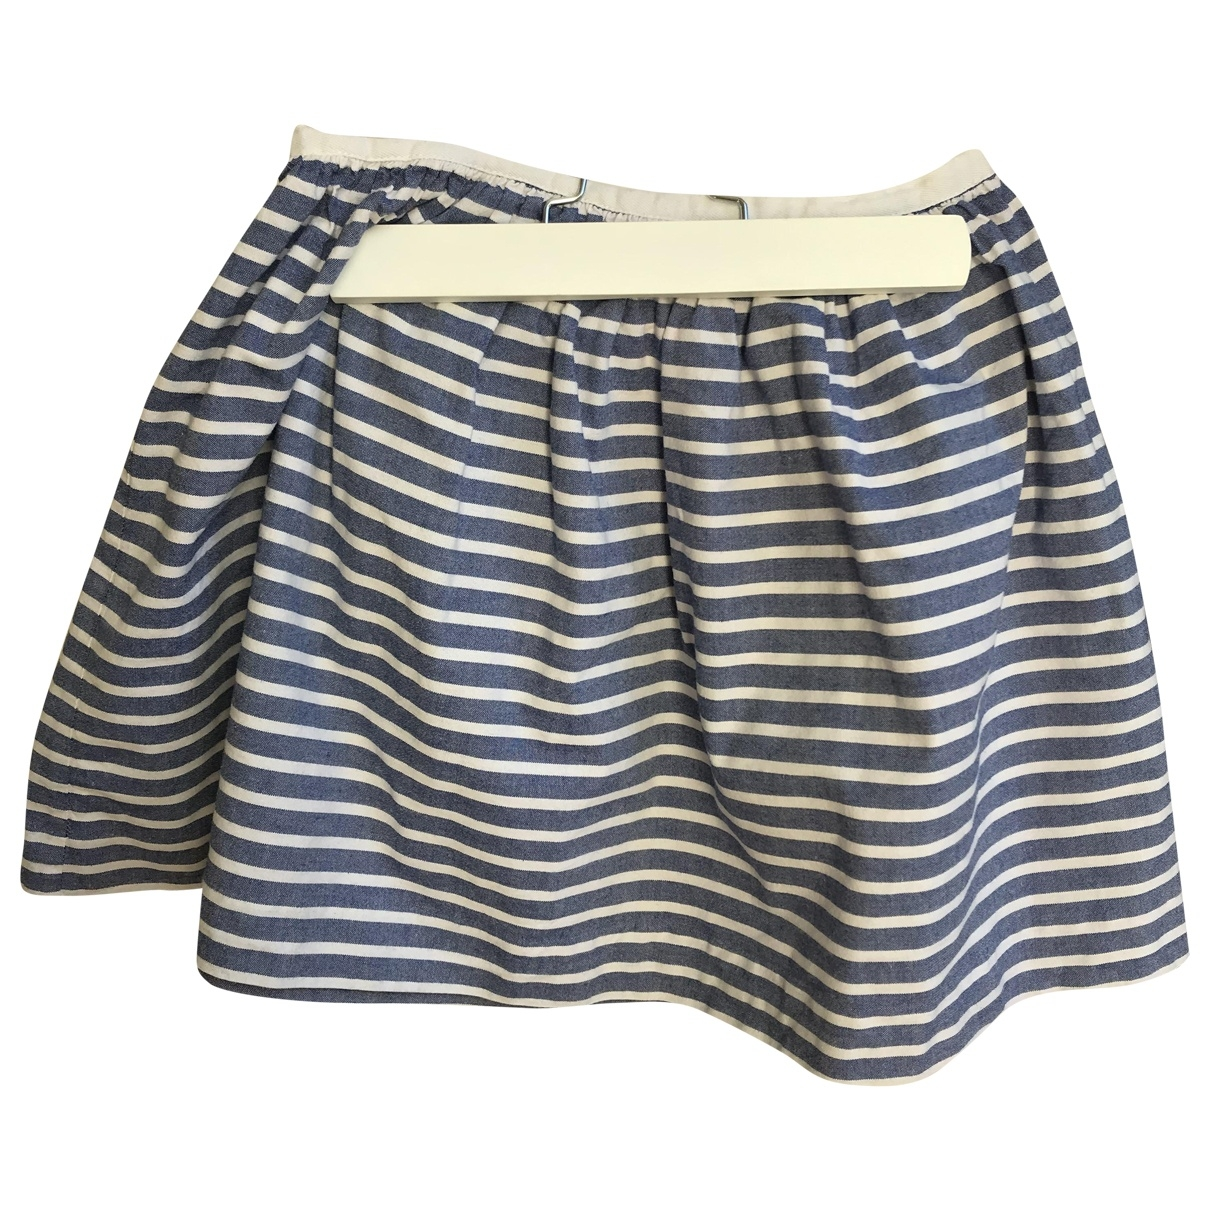 Jacadi \N Blue Cotton skirt for Kids 10 years - up to 142cm FR